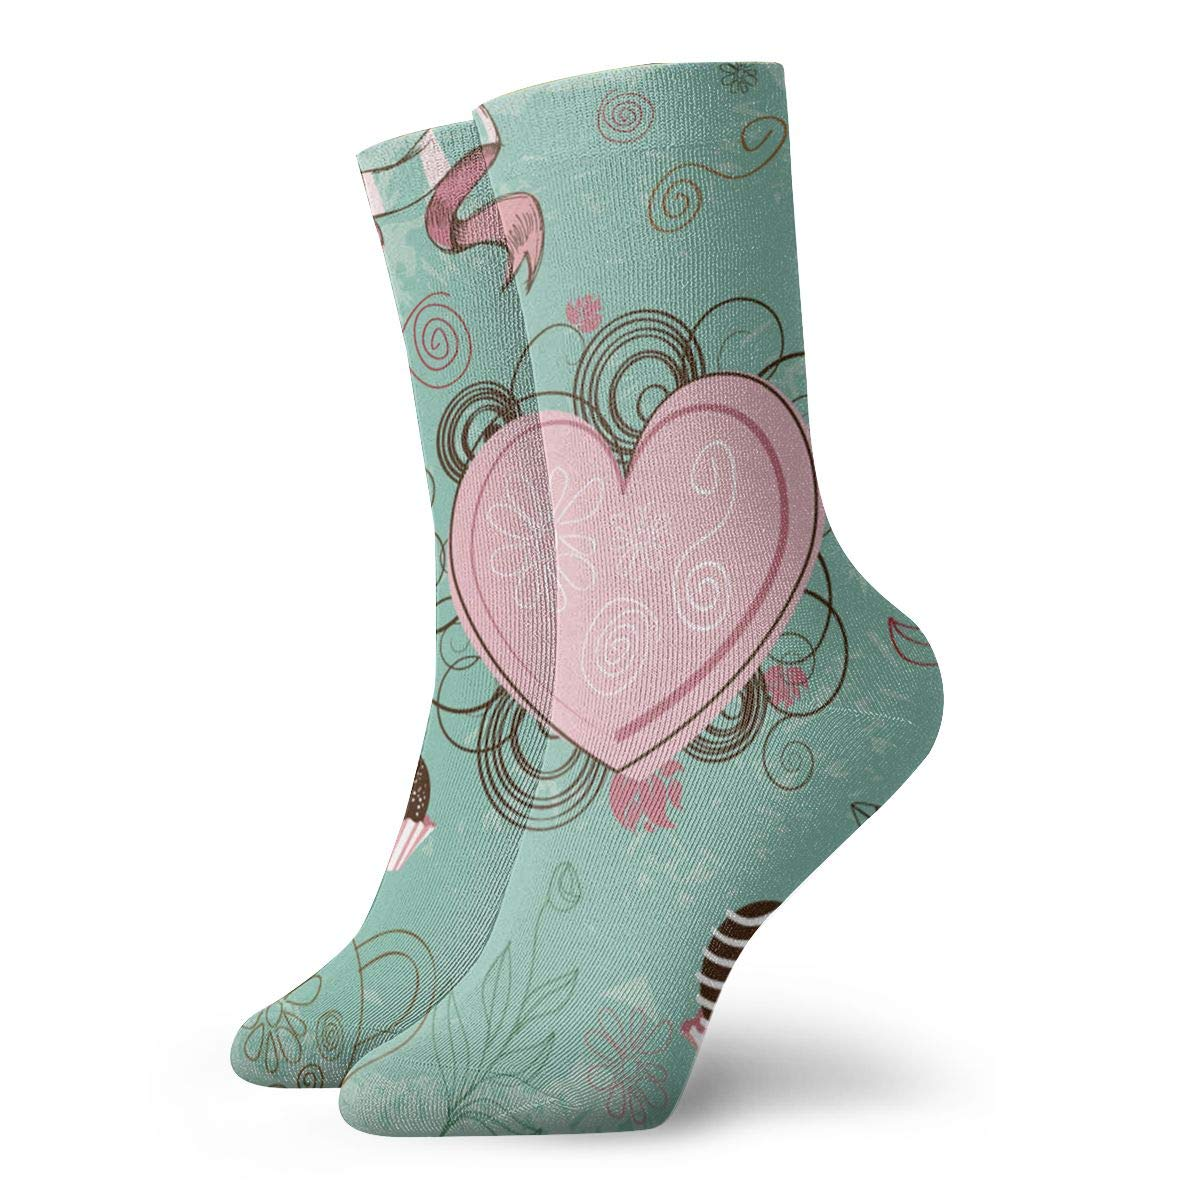 Amazon.com: WEEDKEYCAT Romantic Love Desert Adult Short Socks Cotton Cute  Socks for Mens Womens Yoga Hiking Cycling Running Soccer Sports: Home &  Kitchen